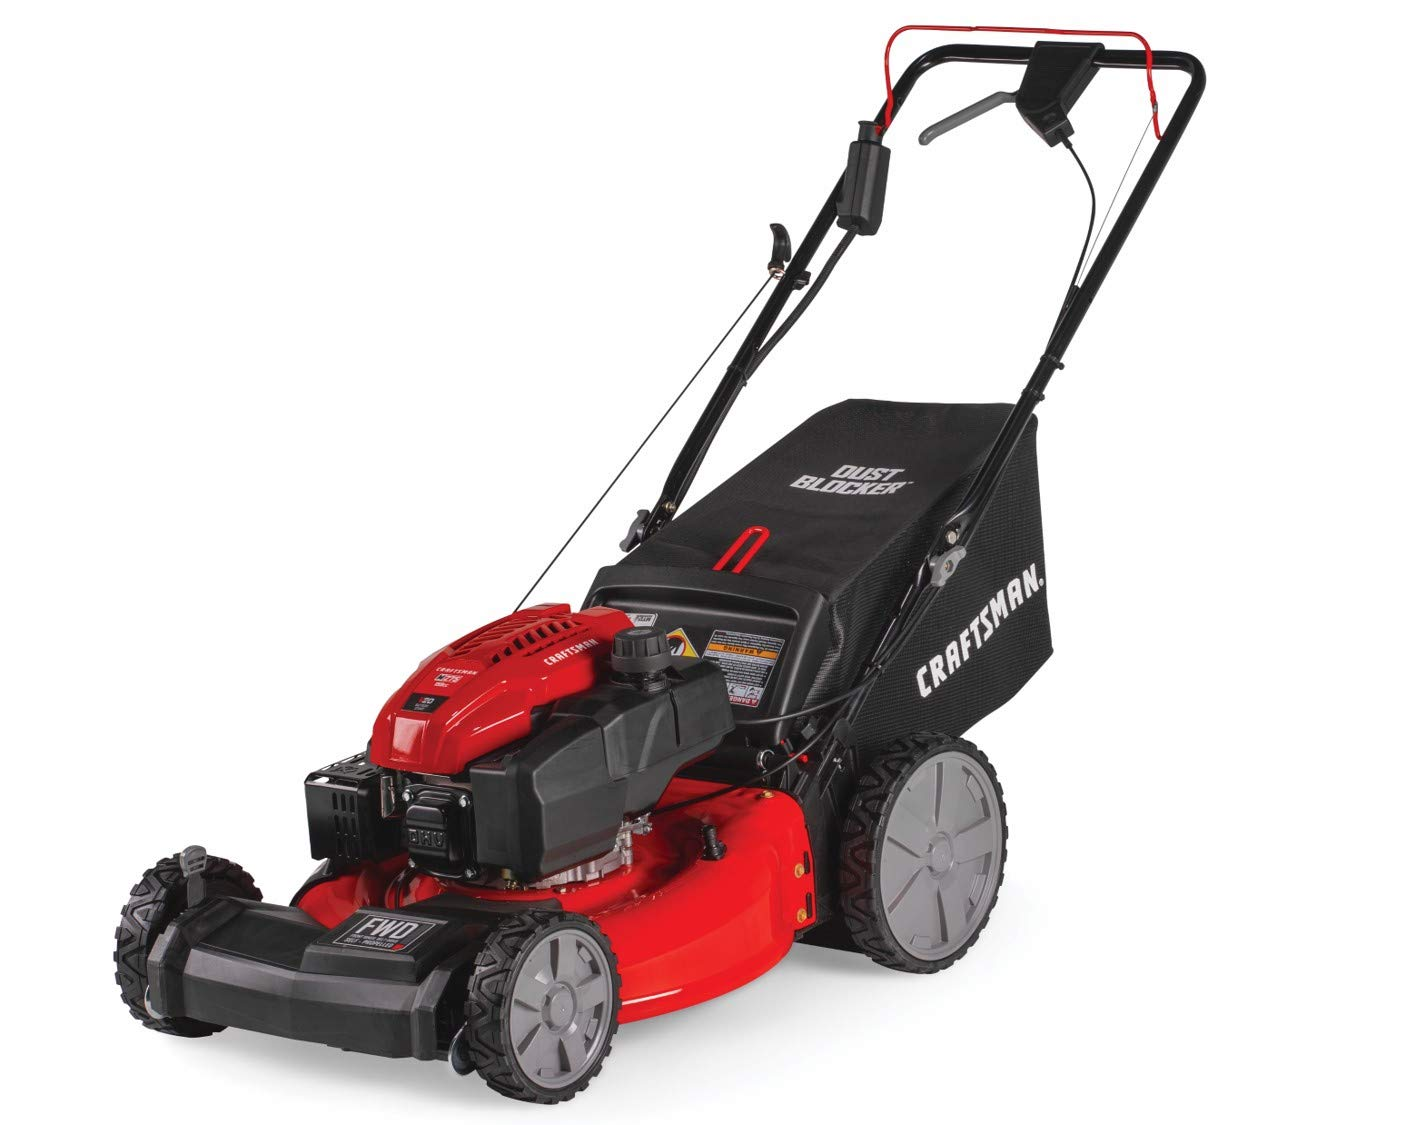 Craftsman M275 159cc 21-Inch 3-in-1 High-Wheeled Self-Propelled FWD Gas Powered Lawn Mower, with Bagger, Red 1 POWERFUL 159CC OHV GAS ENGINE: Powerful gas engine with 21-inch cutting deck to trim grass in one quick pass. 3-IN-1 CAPABILITIES: Unit has side discharge, rear discharge, and mulching capabilities. FRONT WHEEL DRIVE AND SELF-PROPELLED: Move around your yard with less effort at the propulsion speed of your choice.